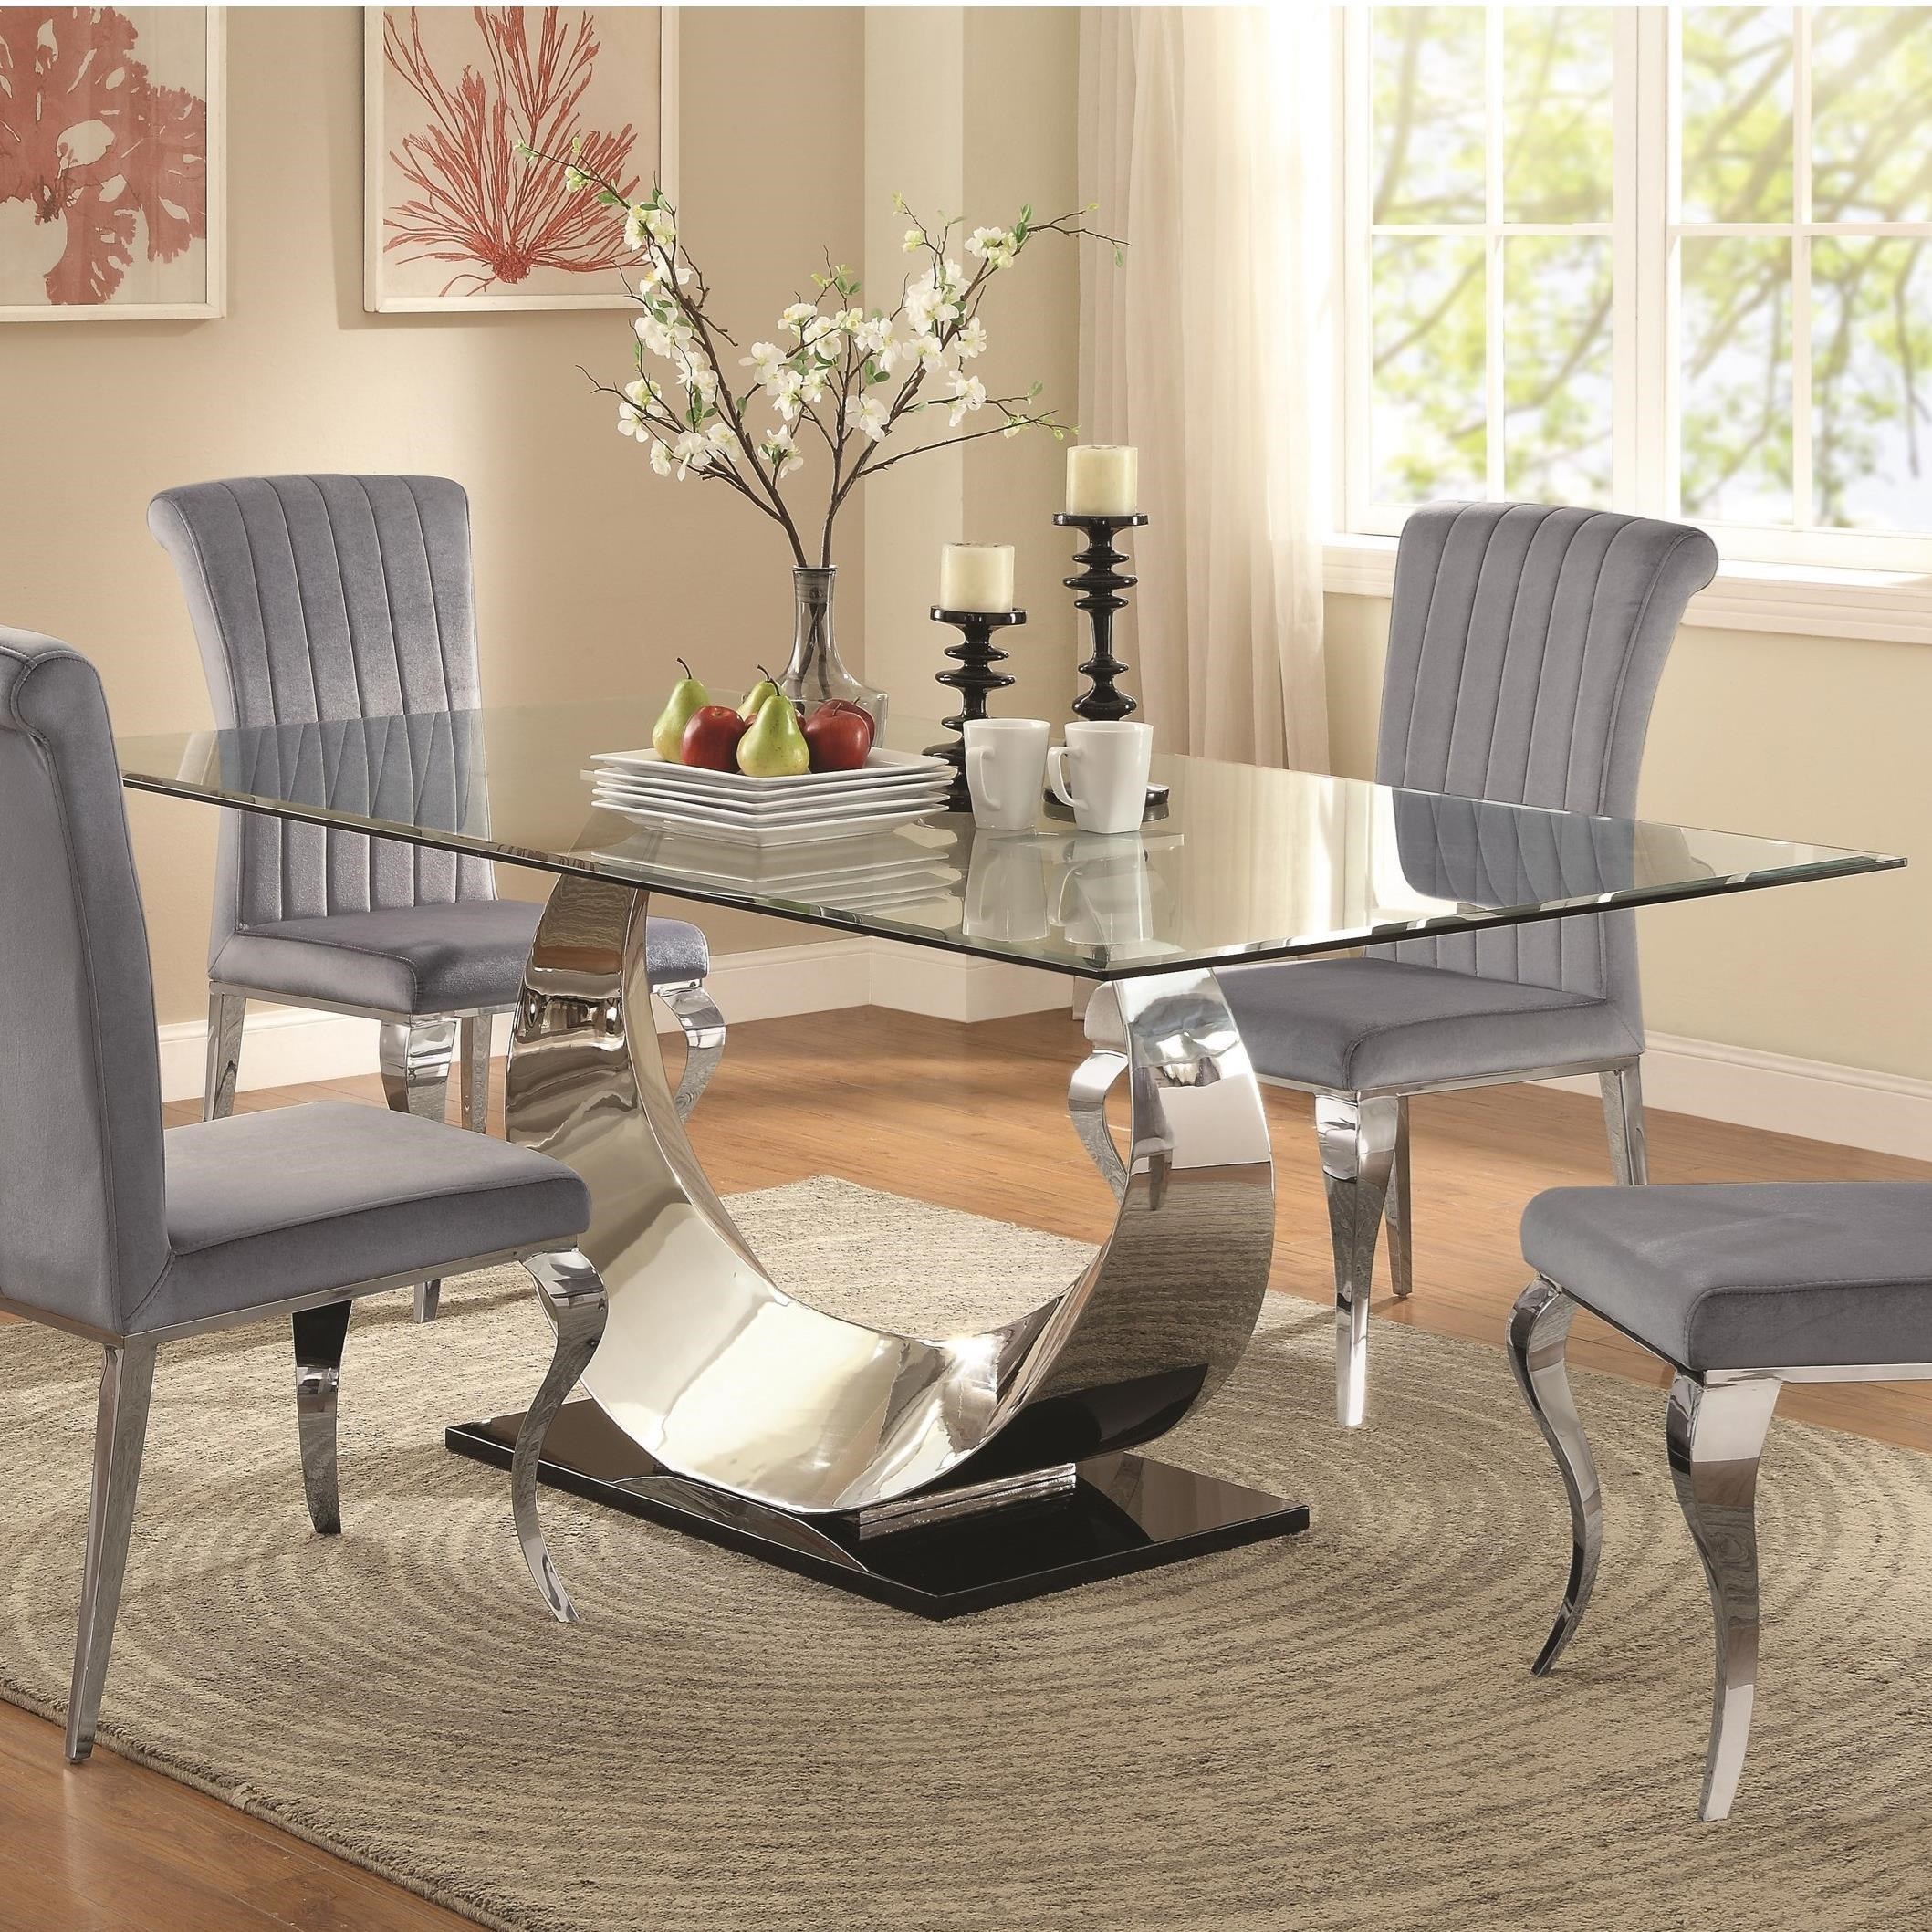 Manessier Contemporary Glass Dining Table Quality Furniture At